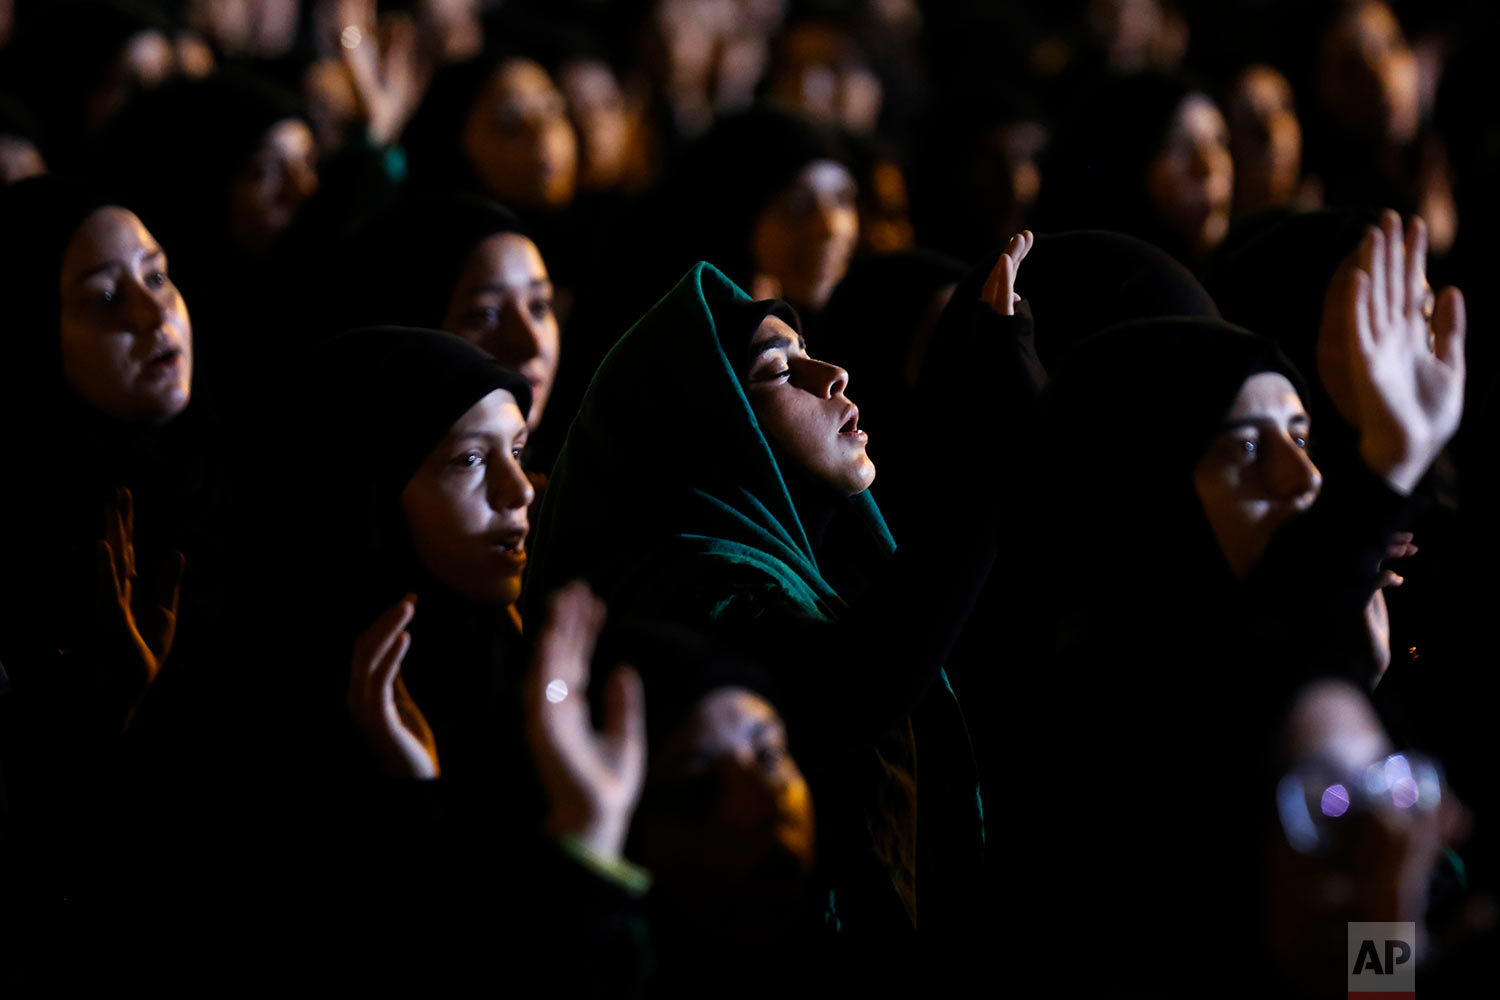 Hezbollah supporters listen to the story of Imam Hussein during activities to mark the ninth of Ashura, a 10-day ritual commemorating the death of Imam Hussein, in a southern suburb of Beirut, Lebanon, Saturday, Sept. 30, 2017. (AP Photo/Hassan Ammar)